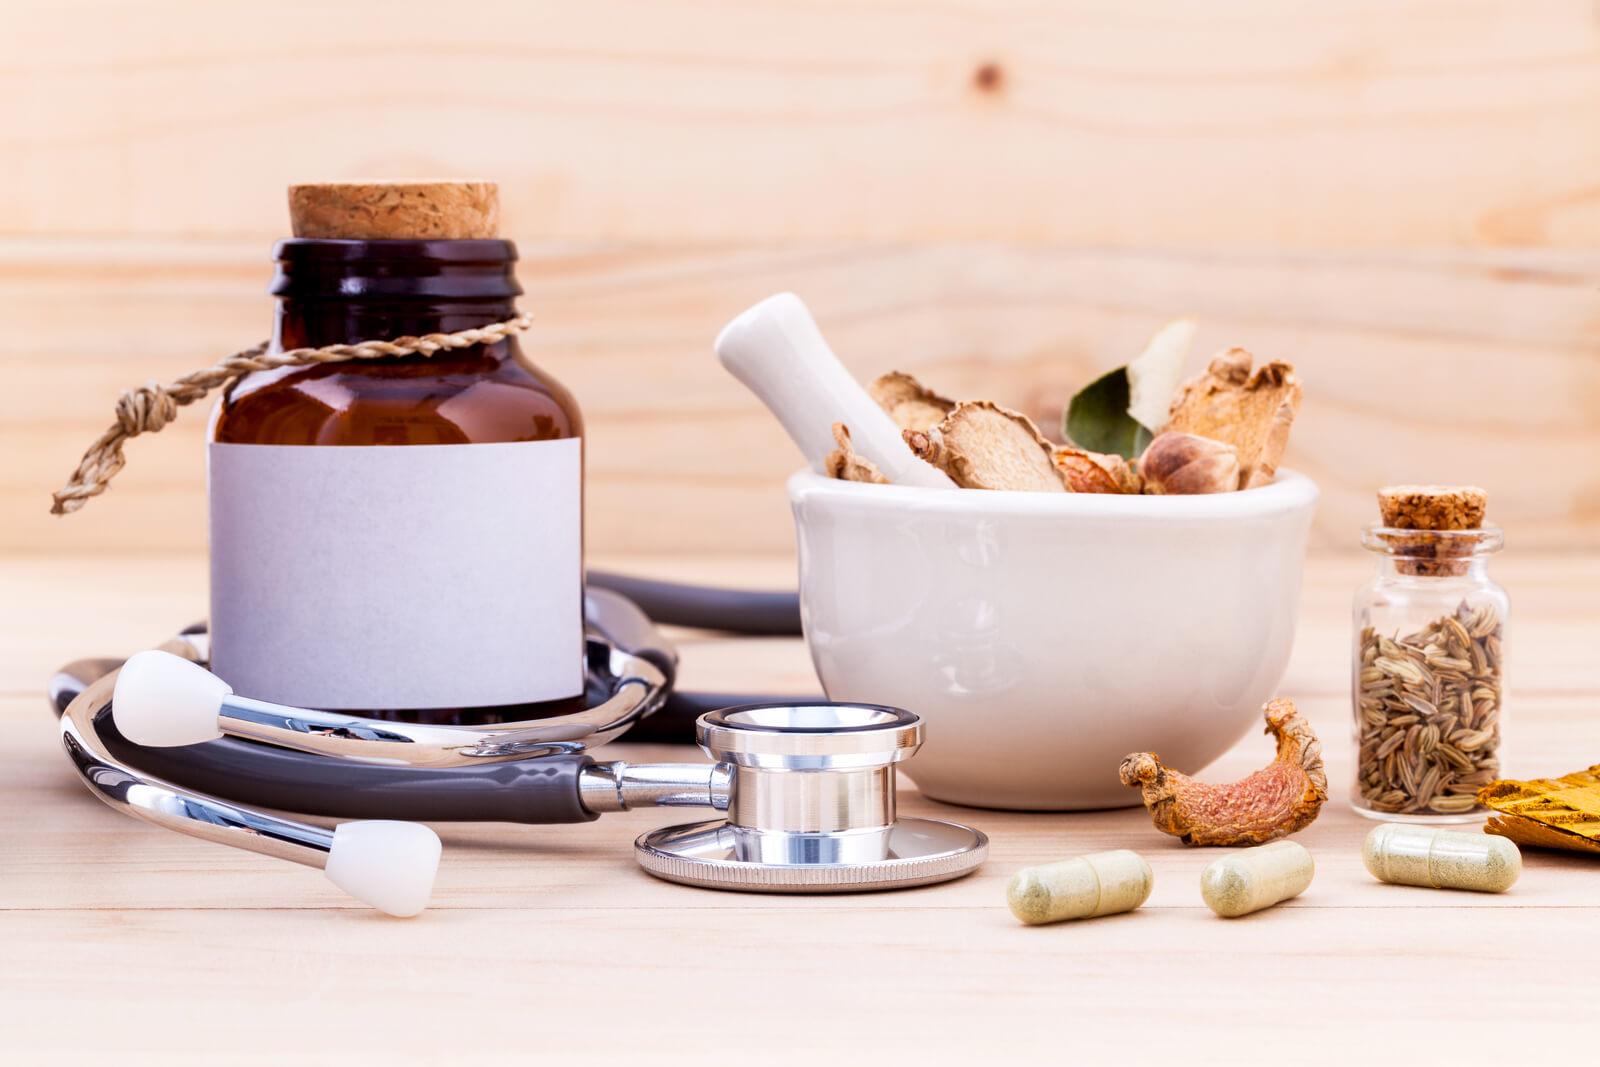 Using other antifungal spices along with cinnamon bark powder is a great way to create an effective home remedy for Candida problems.